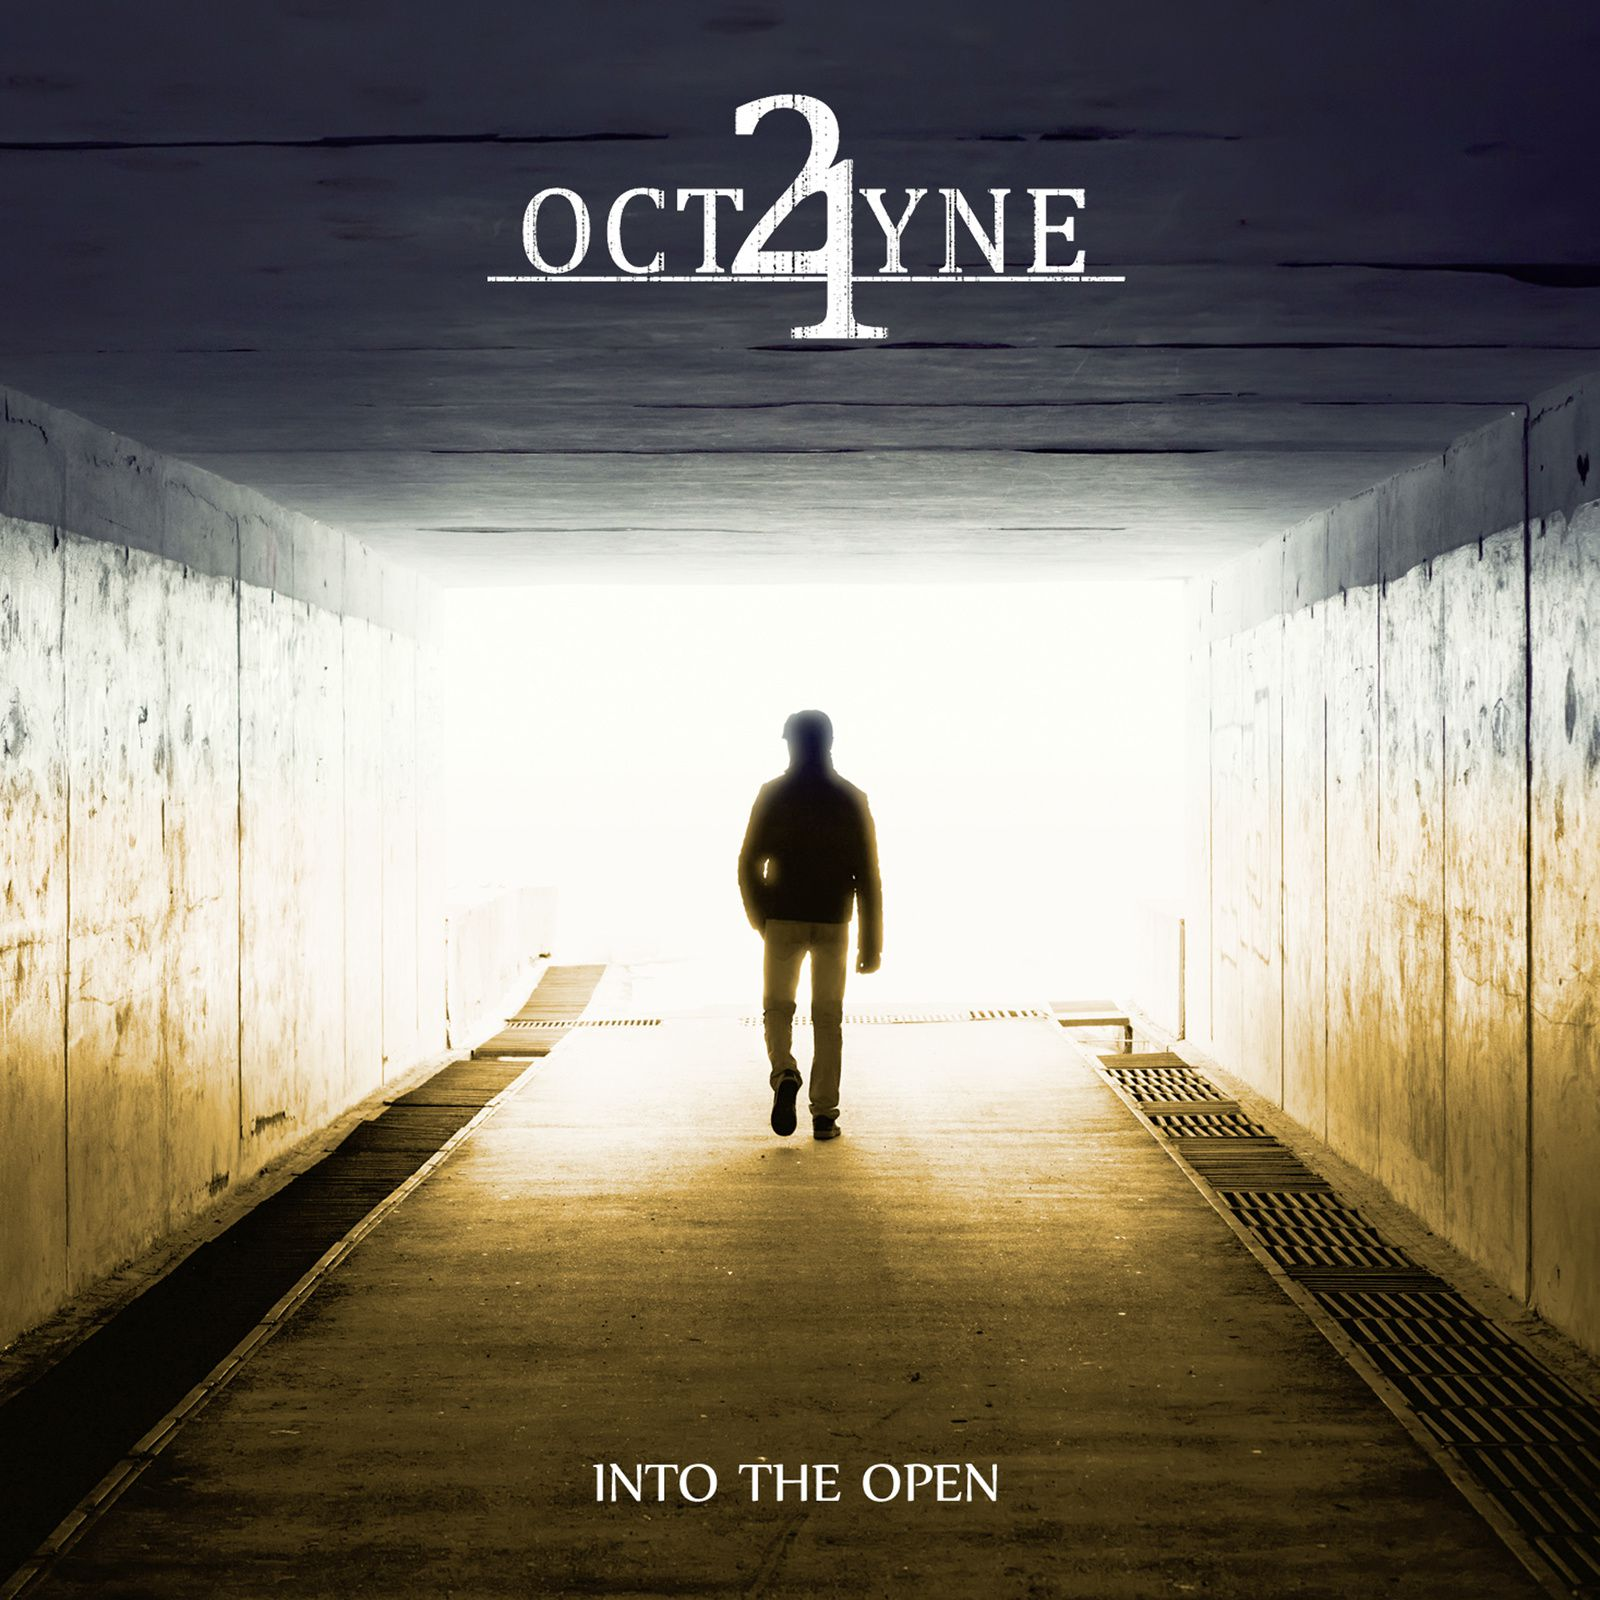 """CD review 21 OCTAYNE """"Into the open"""""""